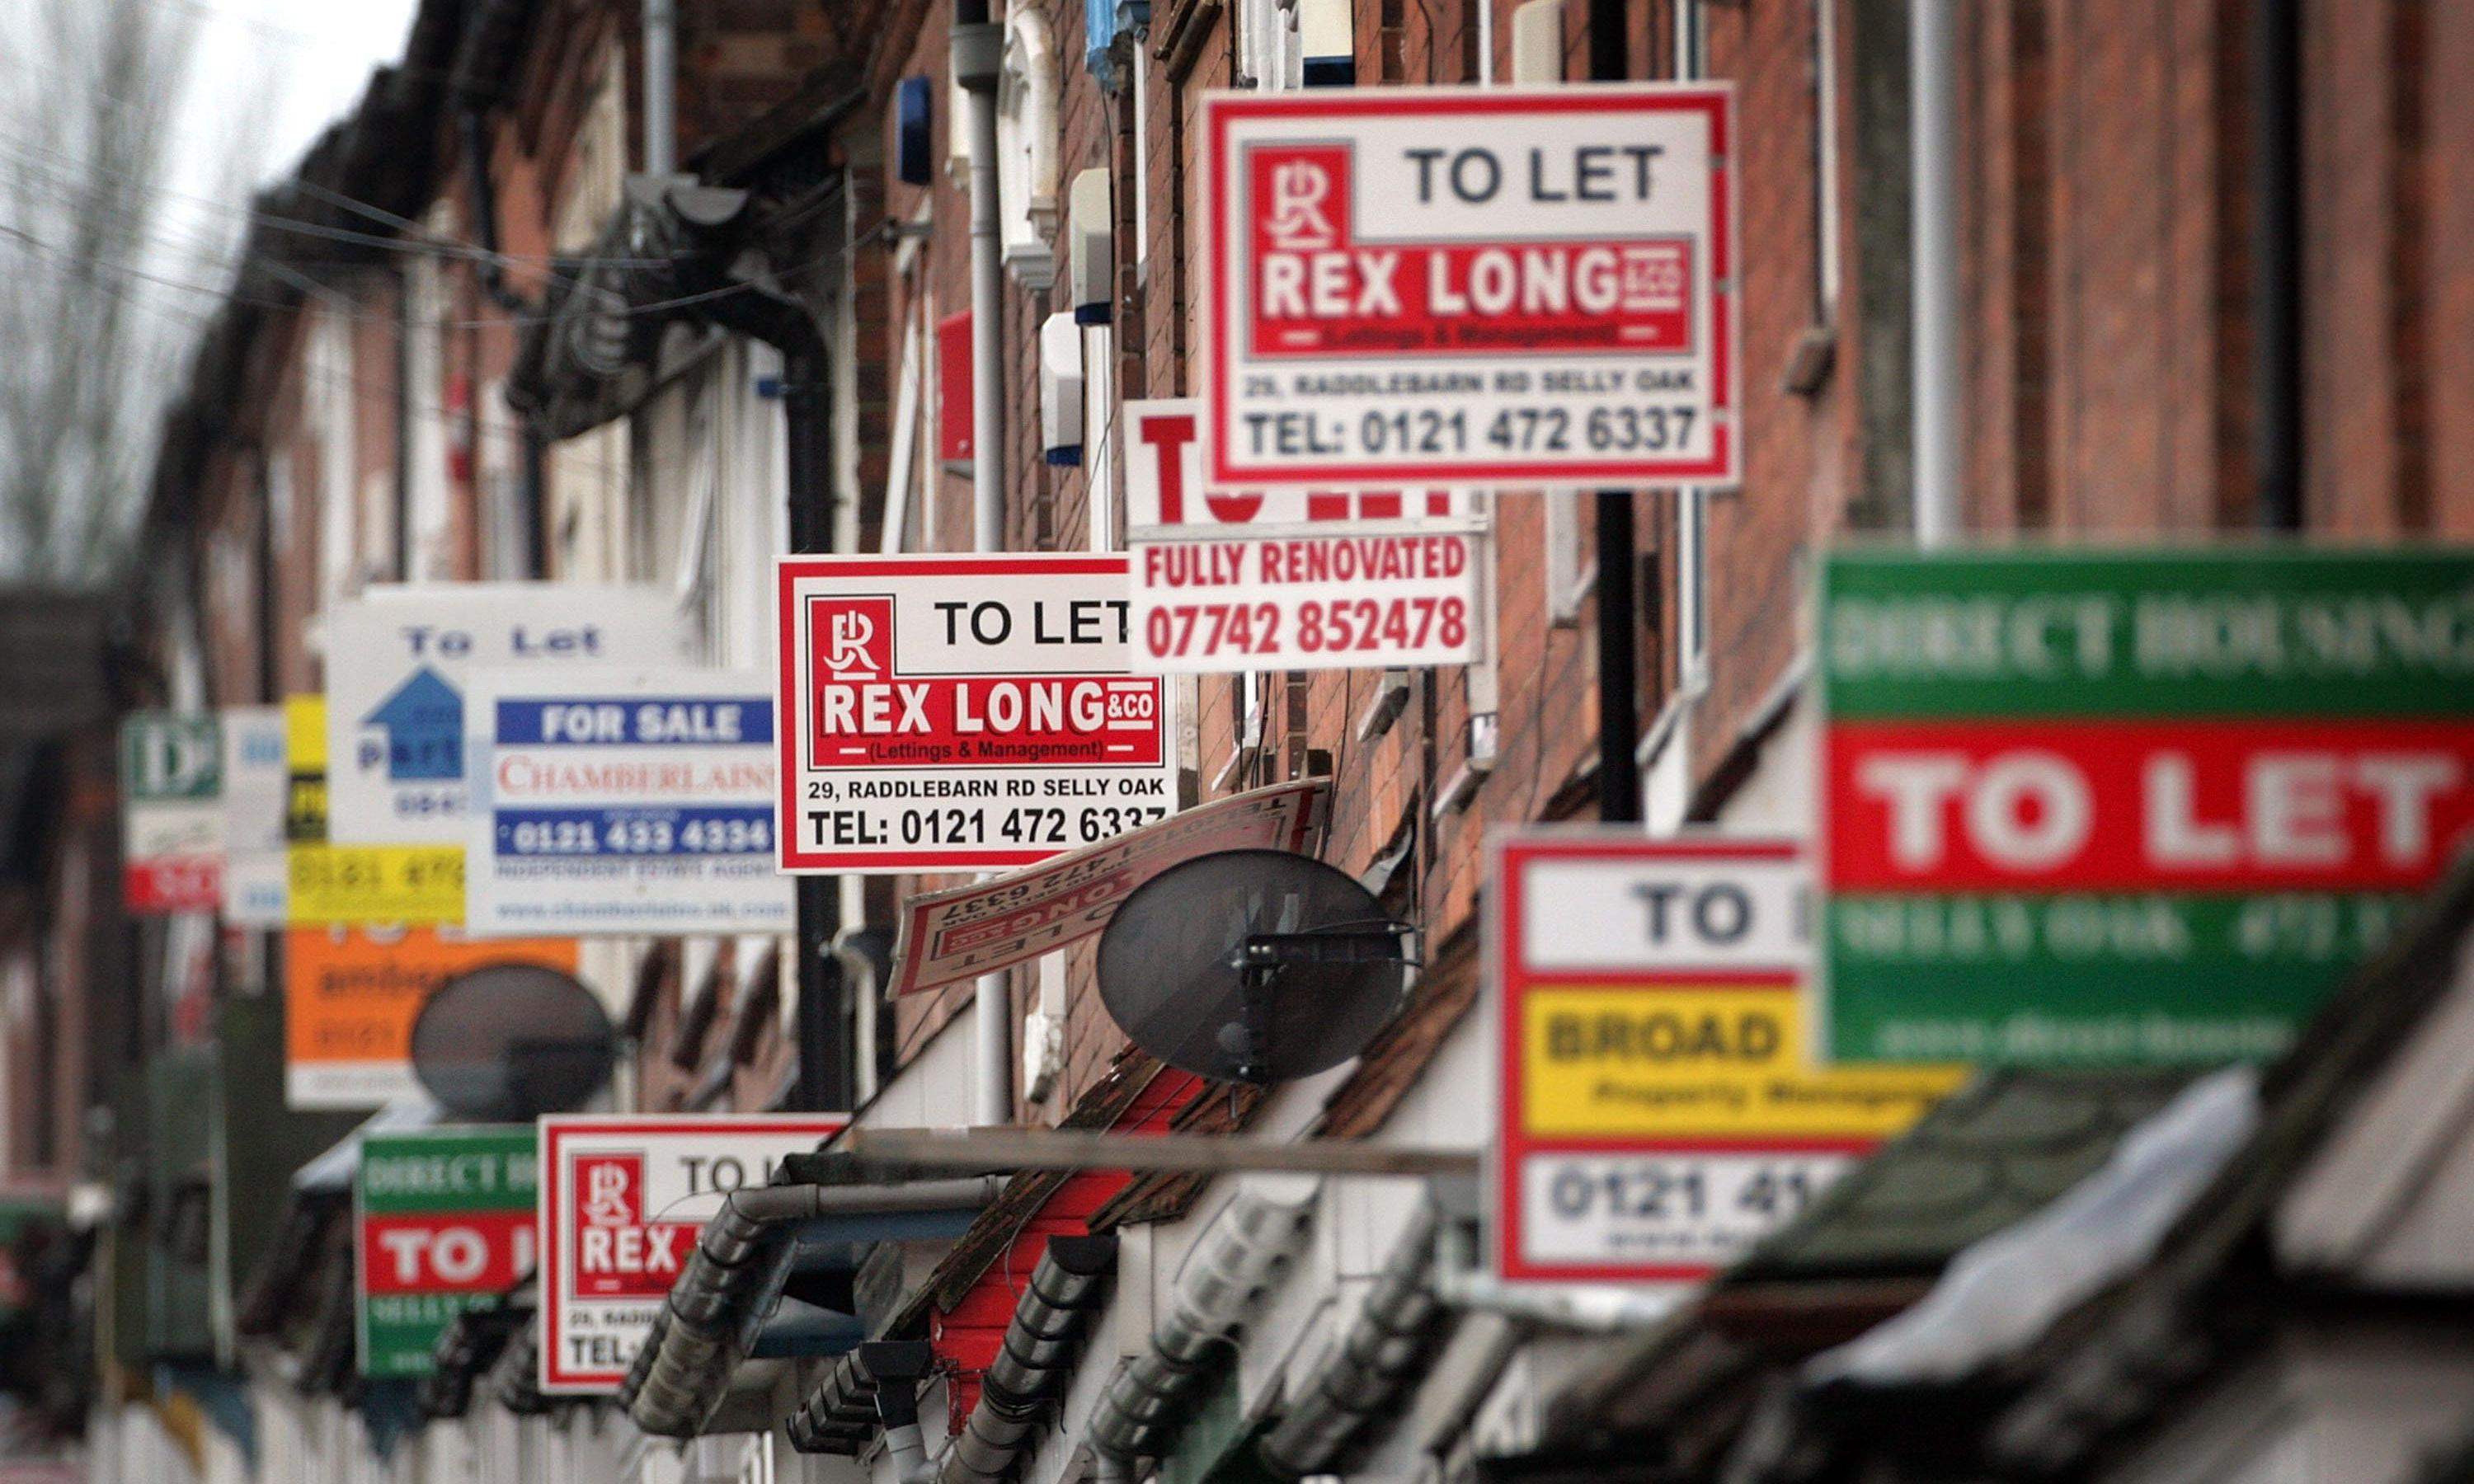 Britain's buy-to-let boom is over - we should rejoice